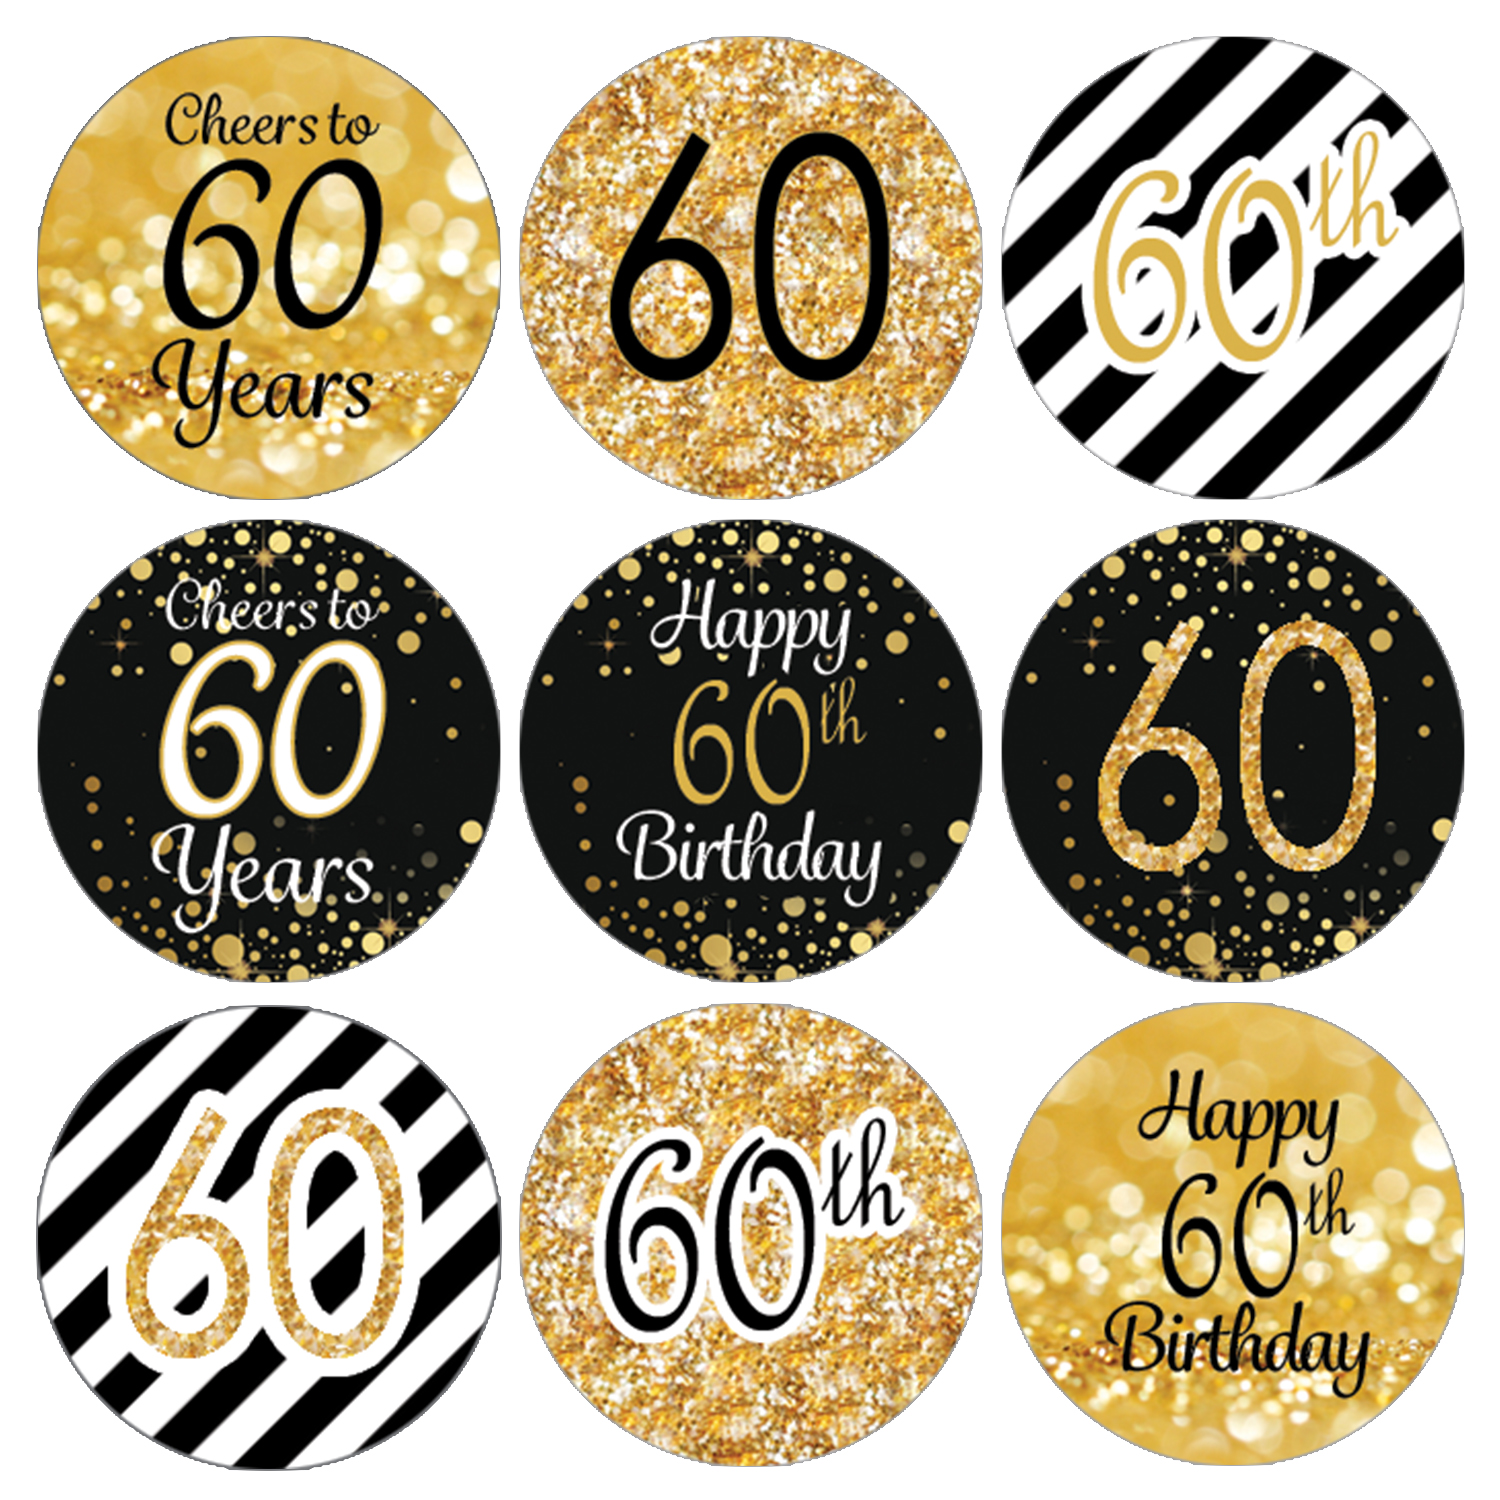 60th Birthday Party Favor Stickers   216 Labels   Black and Gold Decoration Supplies